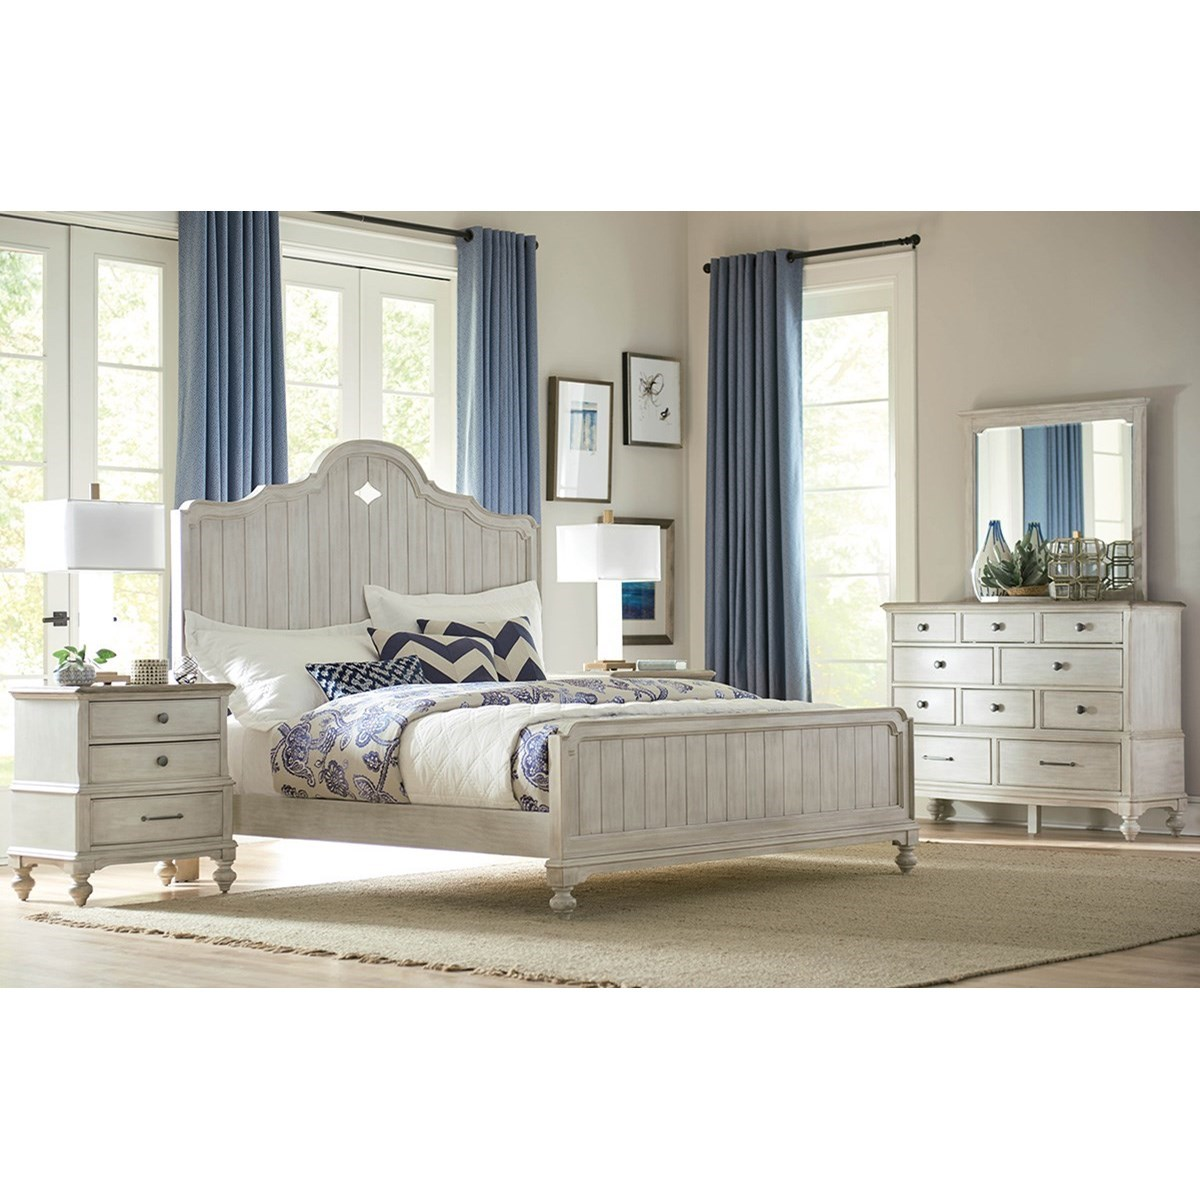 Litchfield California King Bedroom Group by American Drew at Suburban Furniture